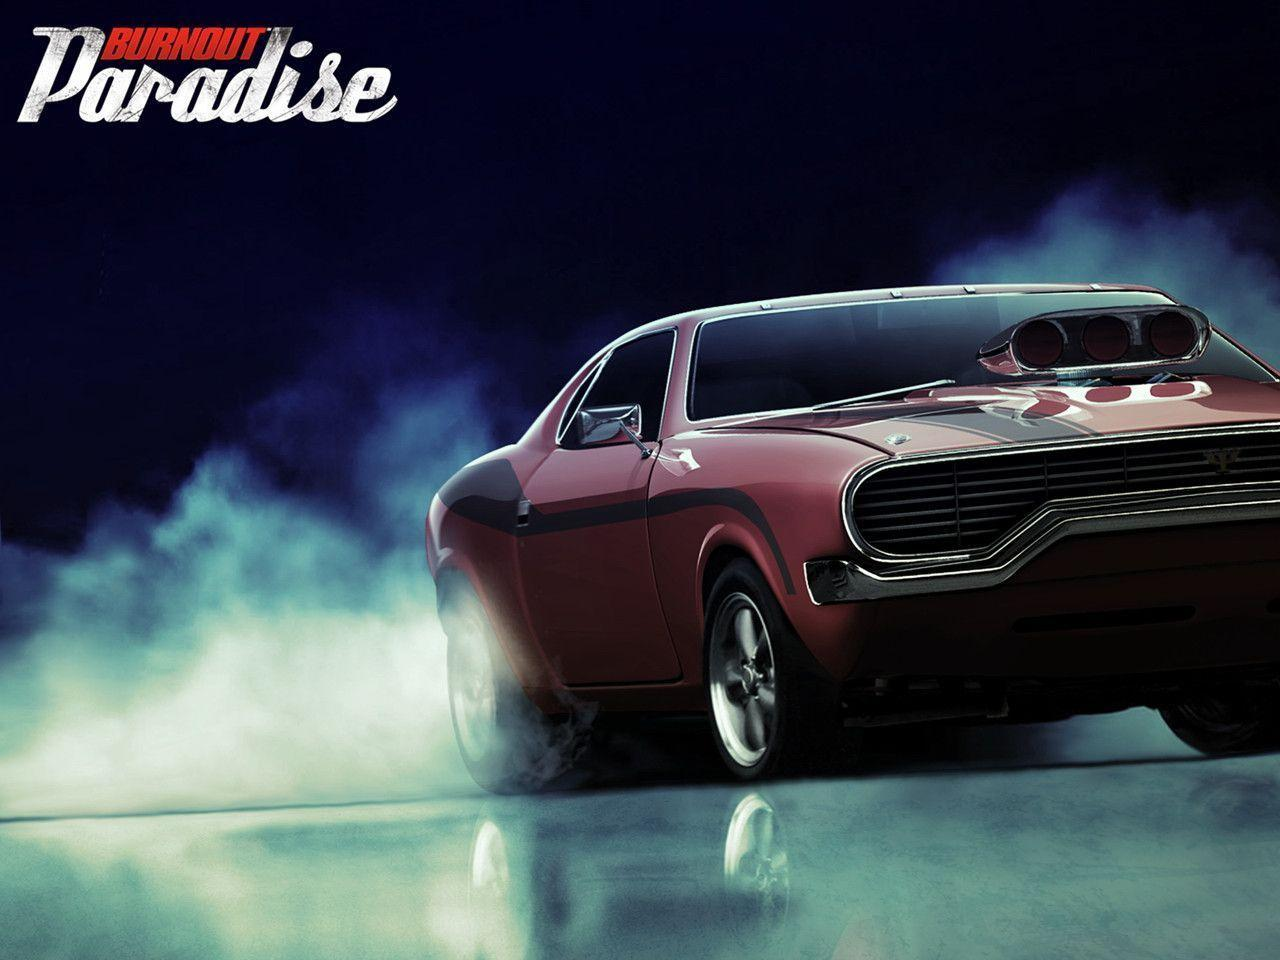 Cool Muscle Cars Wallpapers - Wallpaper Cave